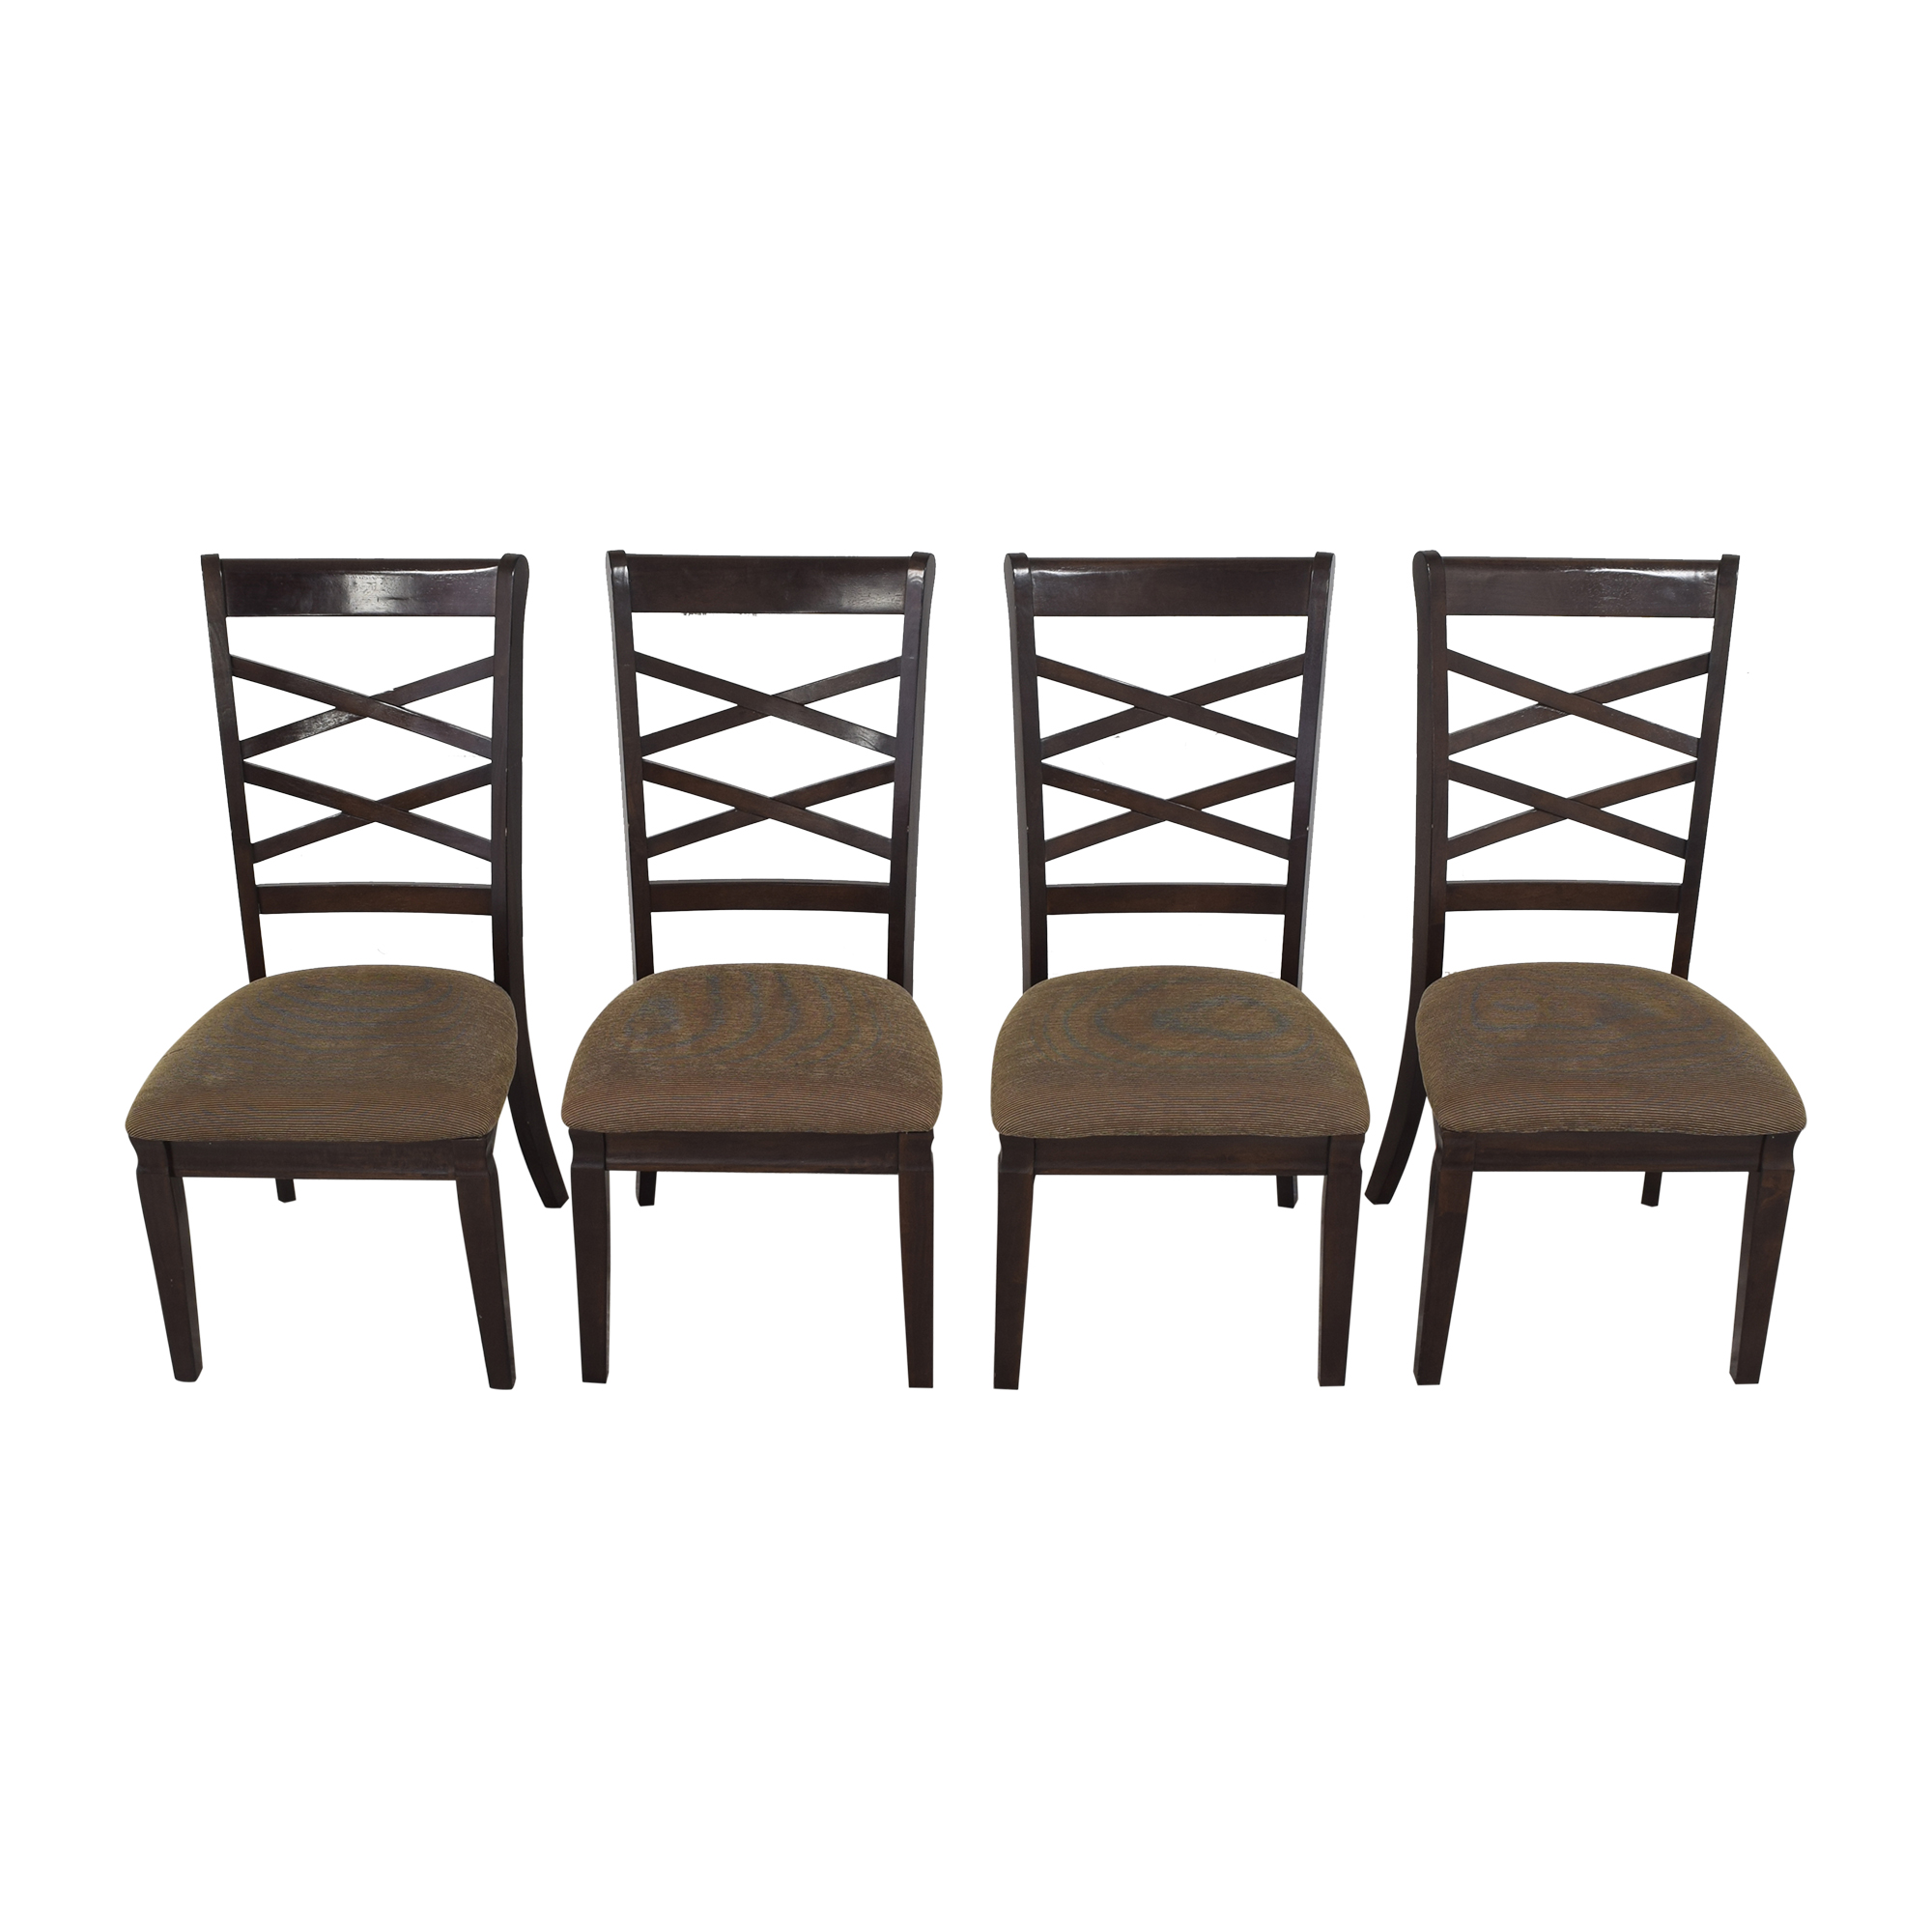 Ashley Furniture Ashley Furniture Hayley Dining Chairs  on sale